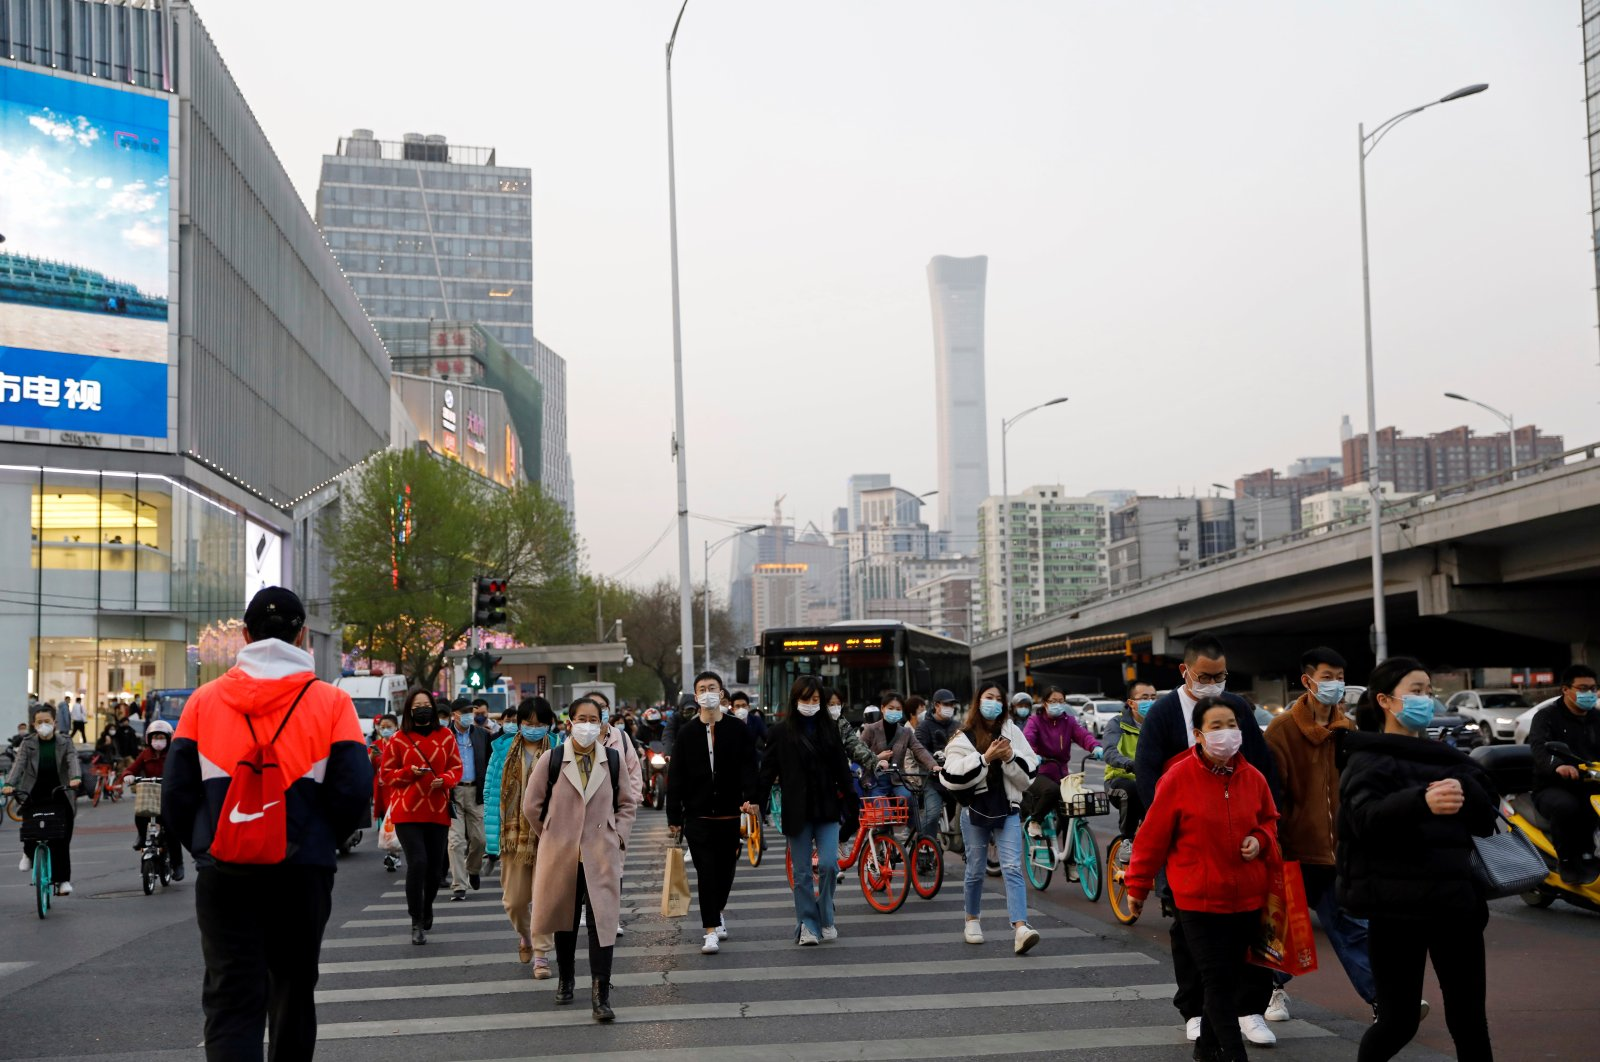 People wearing protective face masks cross a street, following an outbreak of the coronavirus disease, in Beijing, China, Tuesday, April 7, 2020. REUTERS